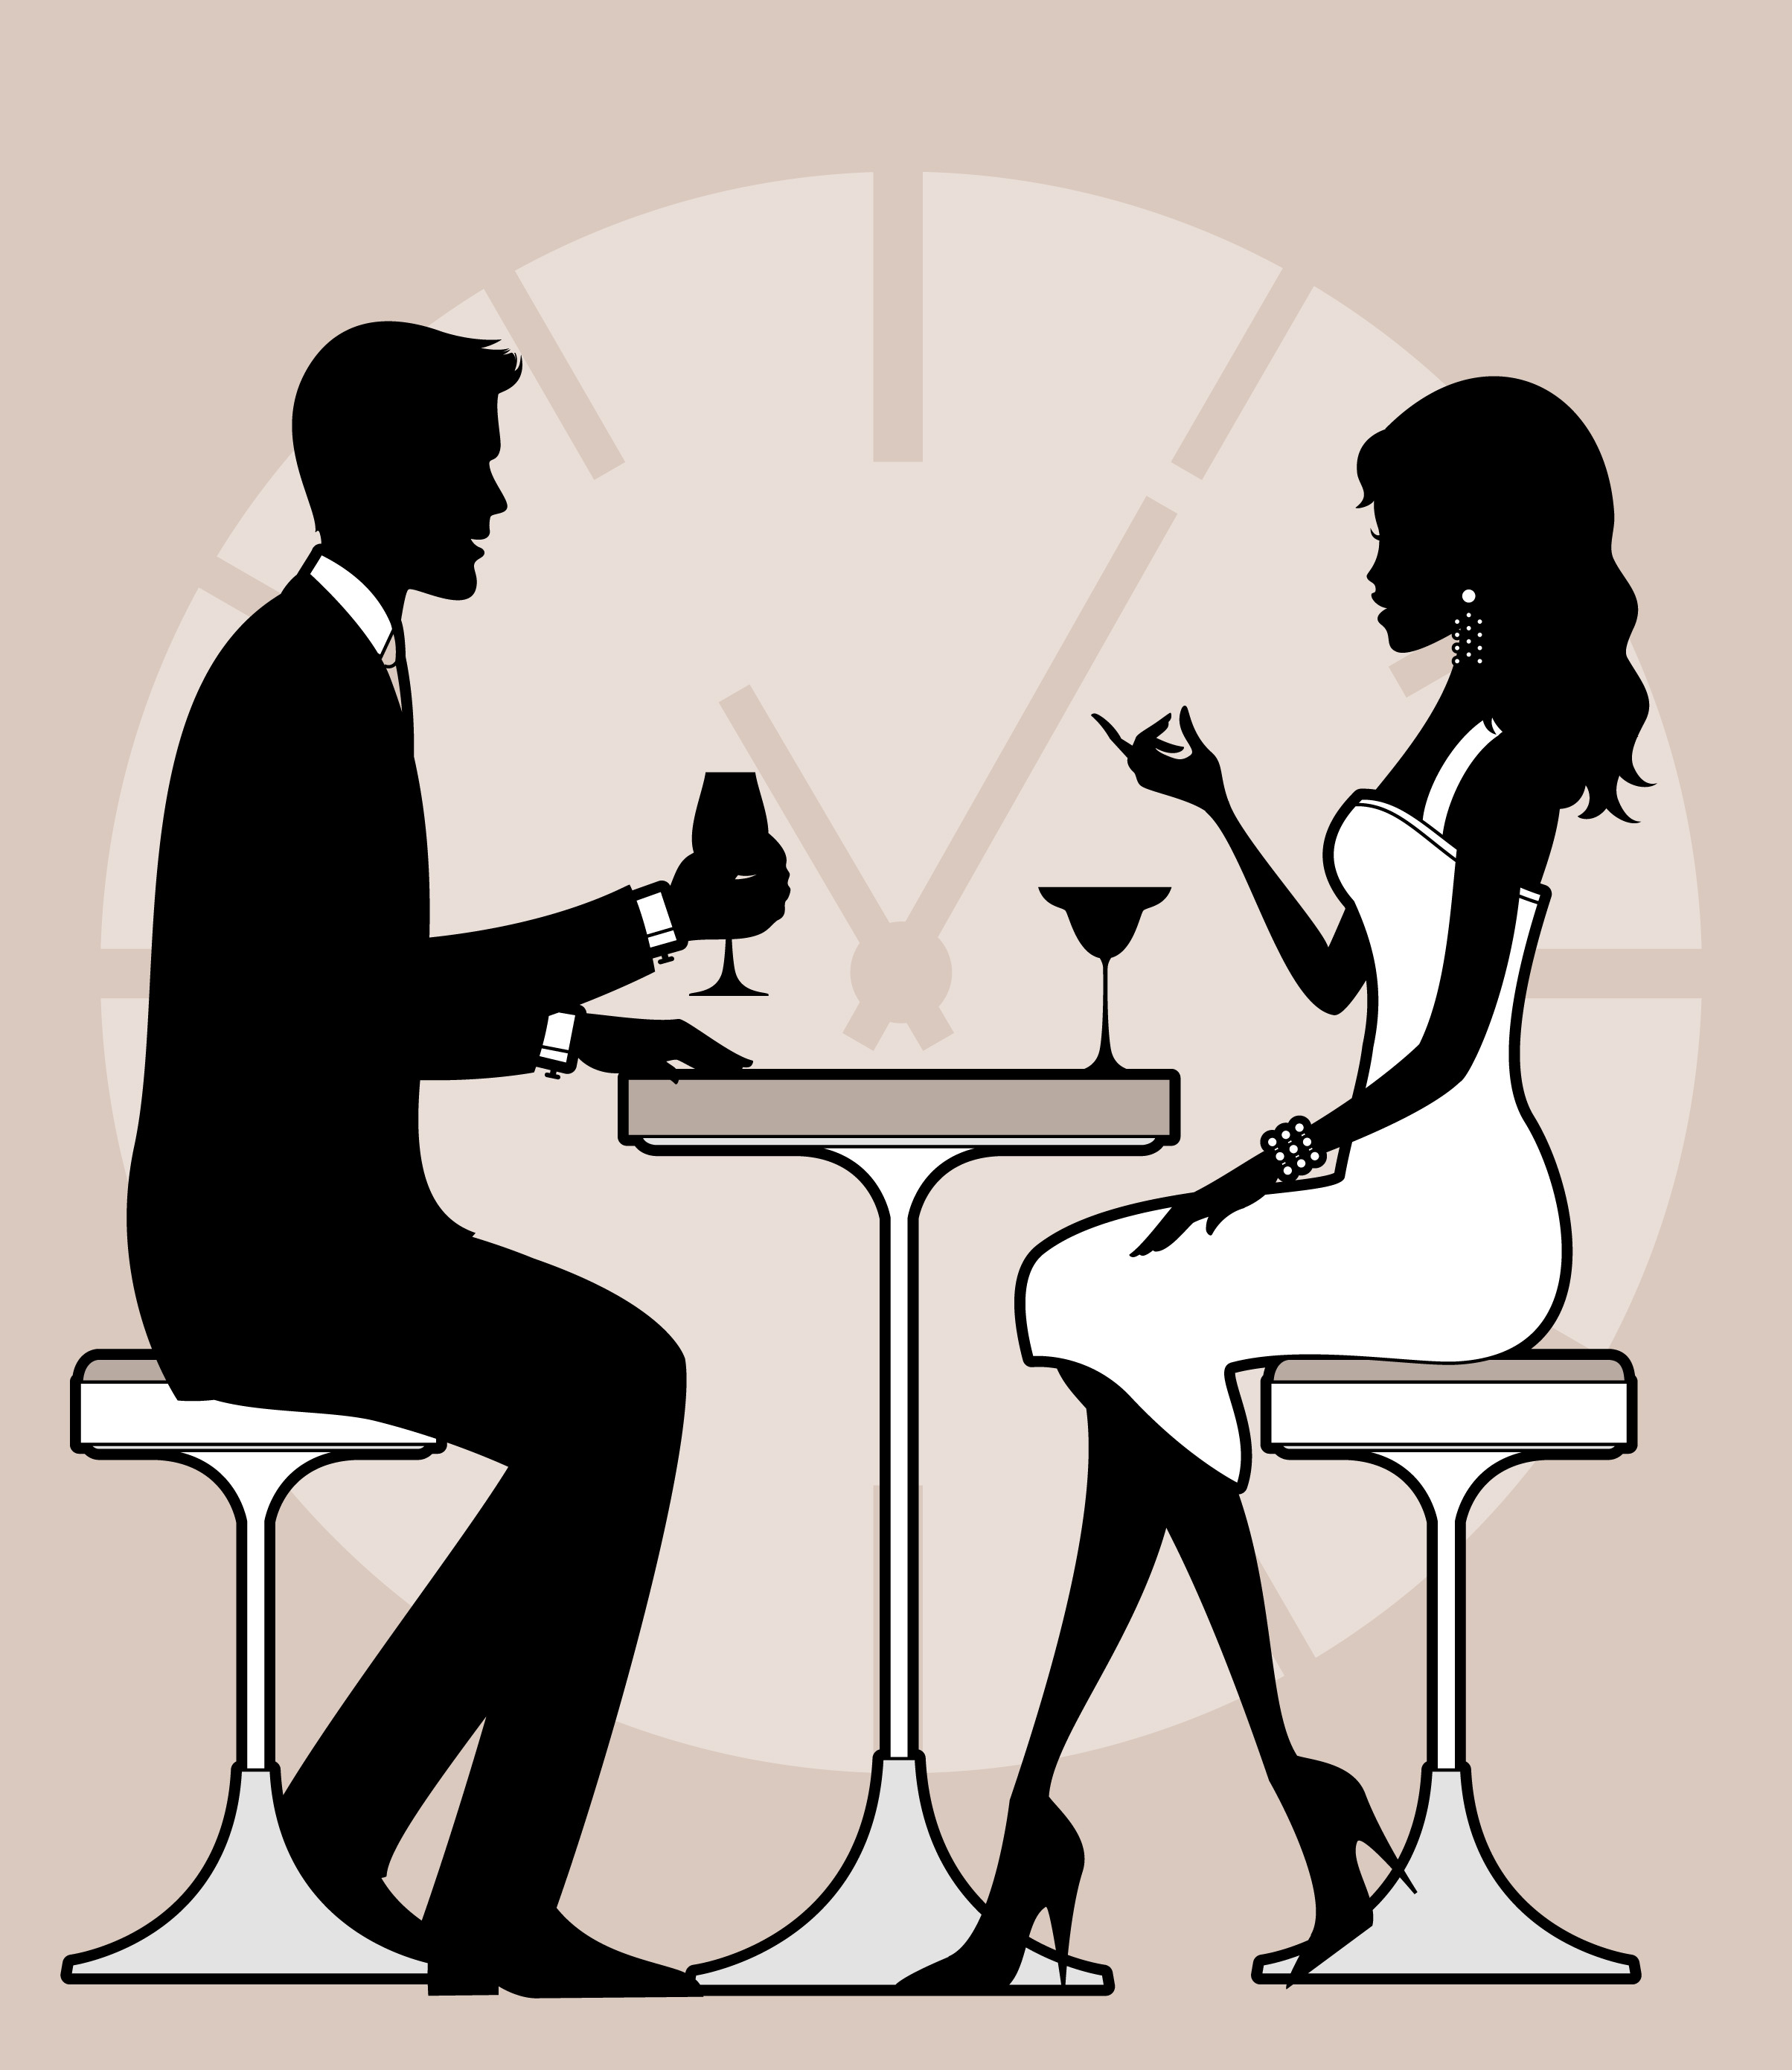 Top 5 Ways on How to Promote a Speed Dating Event